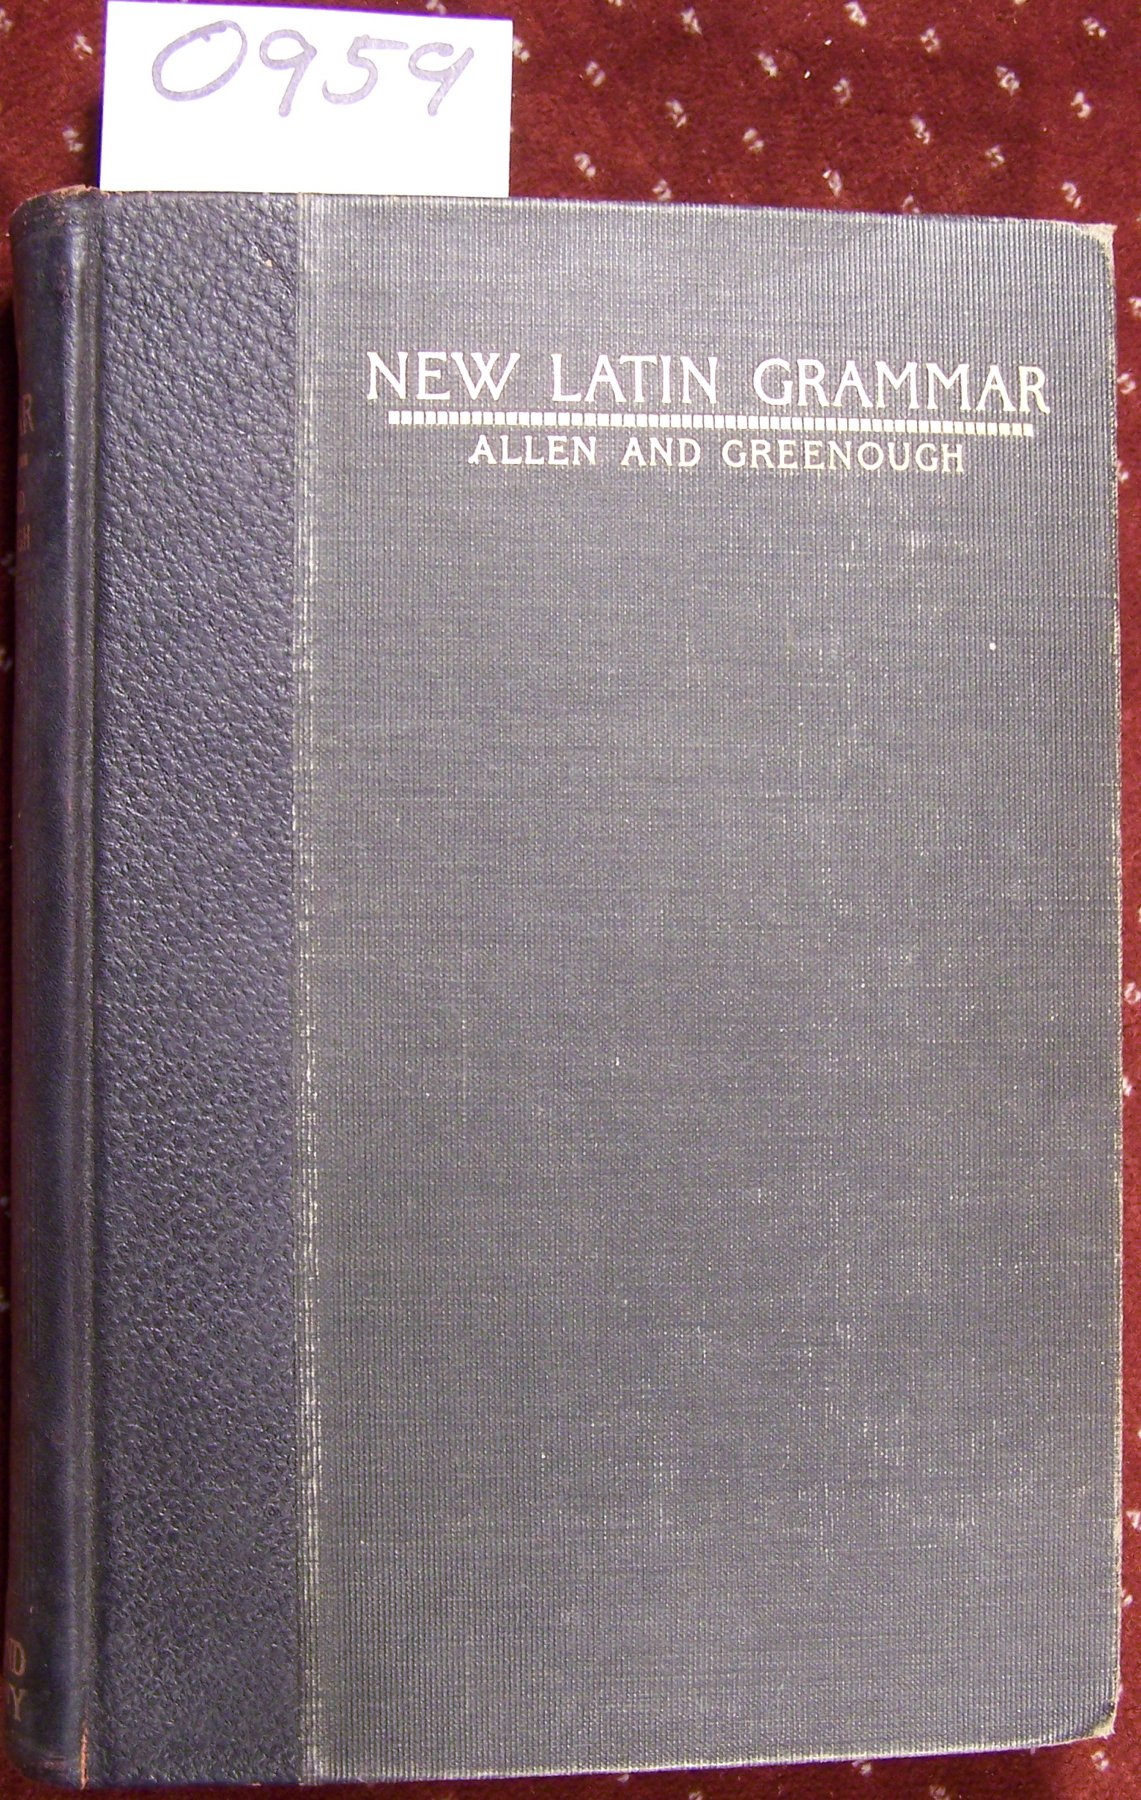 ALLEN AND GREENOUGH'S NEW LATIN GRAMMAR For Schools and Colleges. Founded on Comparative Grammar